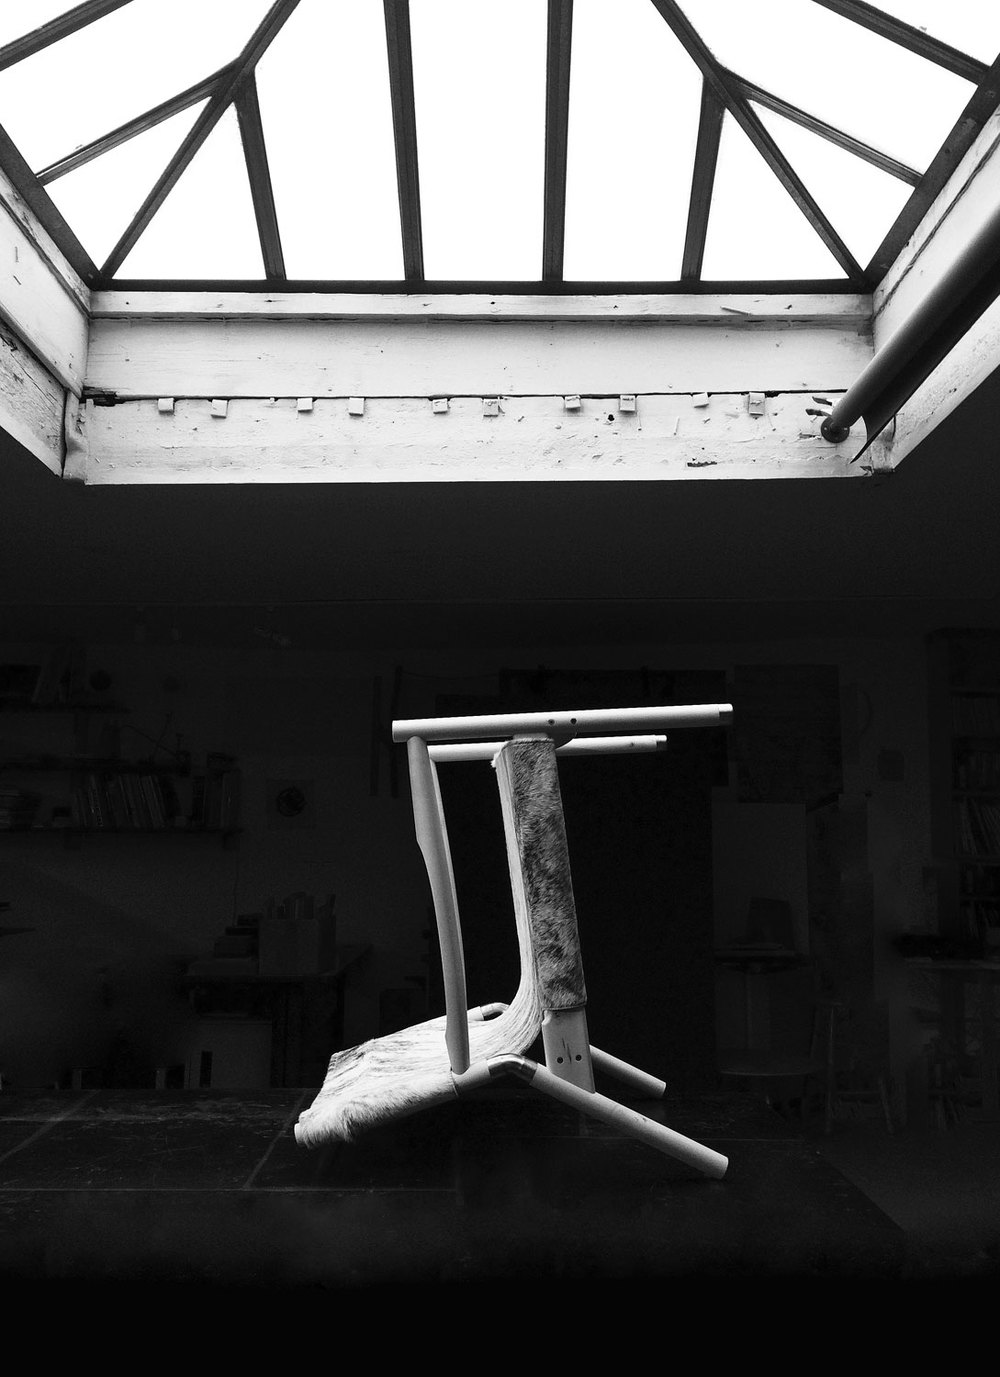 Floating-chair-FINAL.jpg